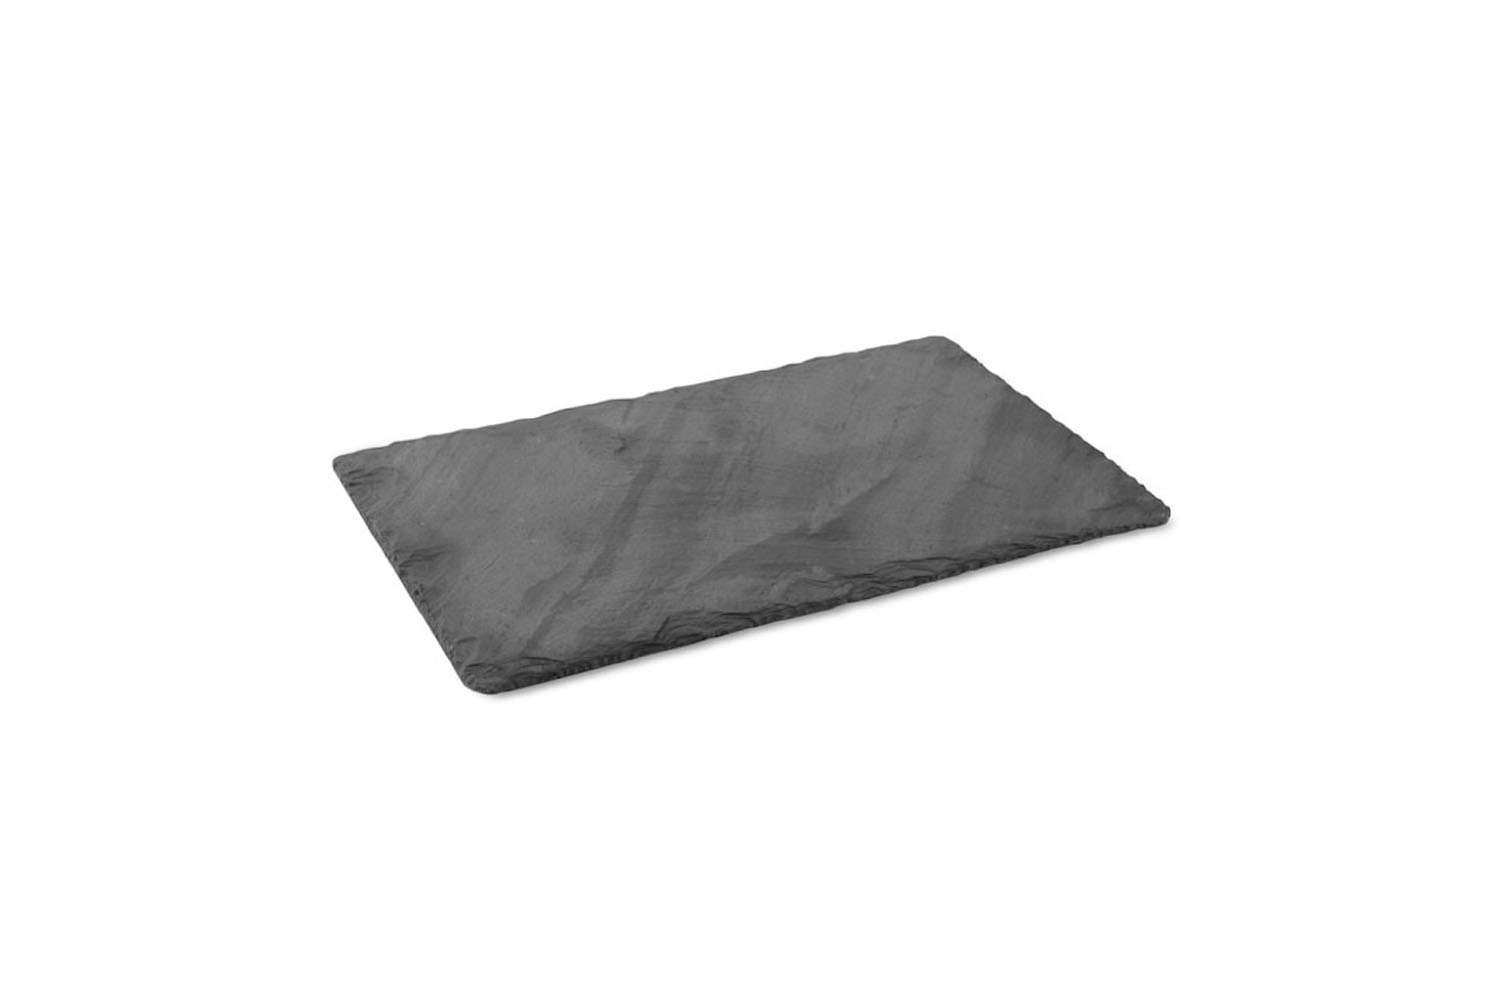 Wiliams-Sonoma Slate Cutting Board